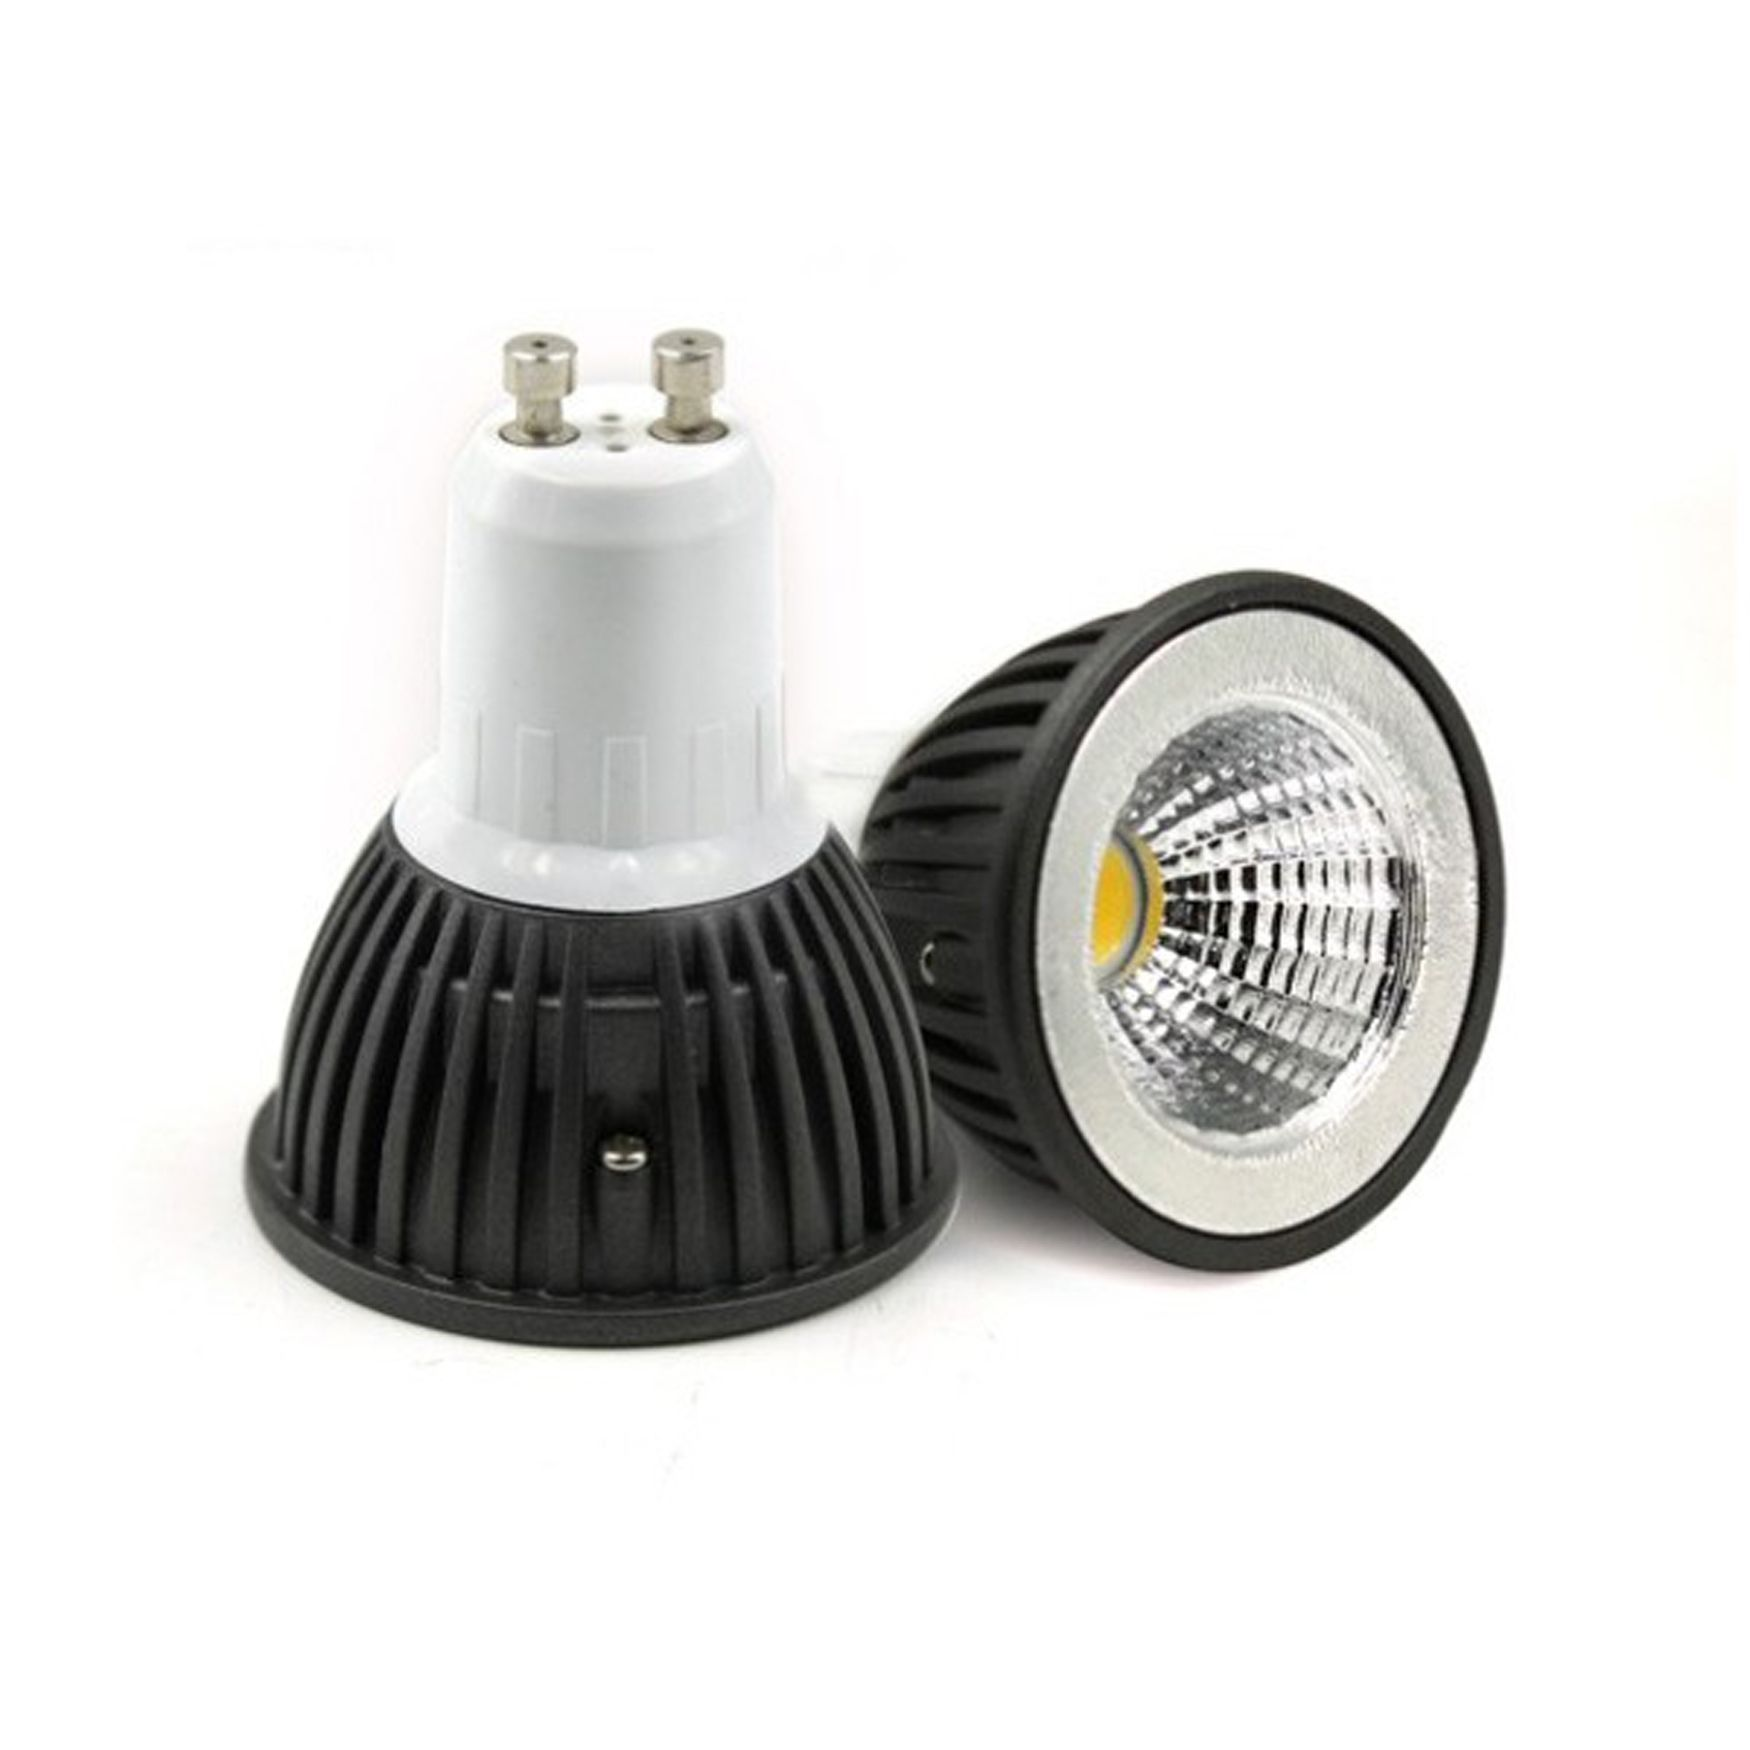 GU10 COB LED BULB 3W 60 DEGREE BEAM ANGLE 50W REPLACEMENT